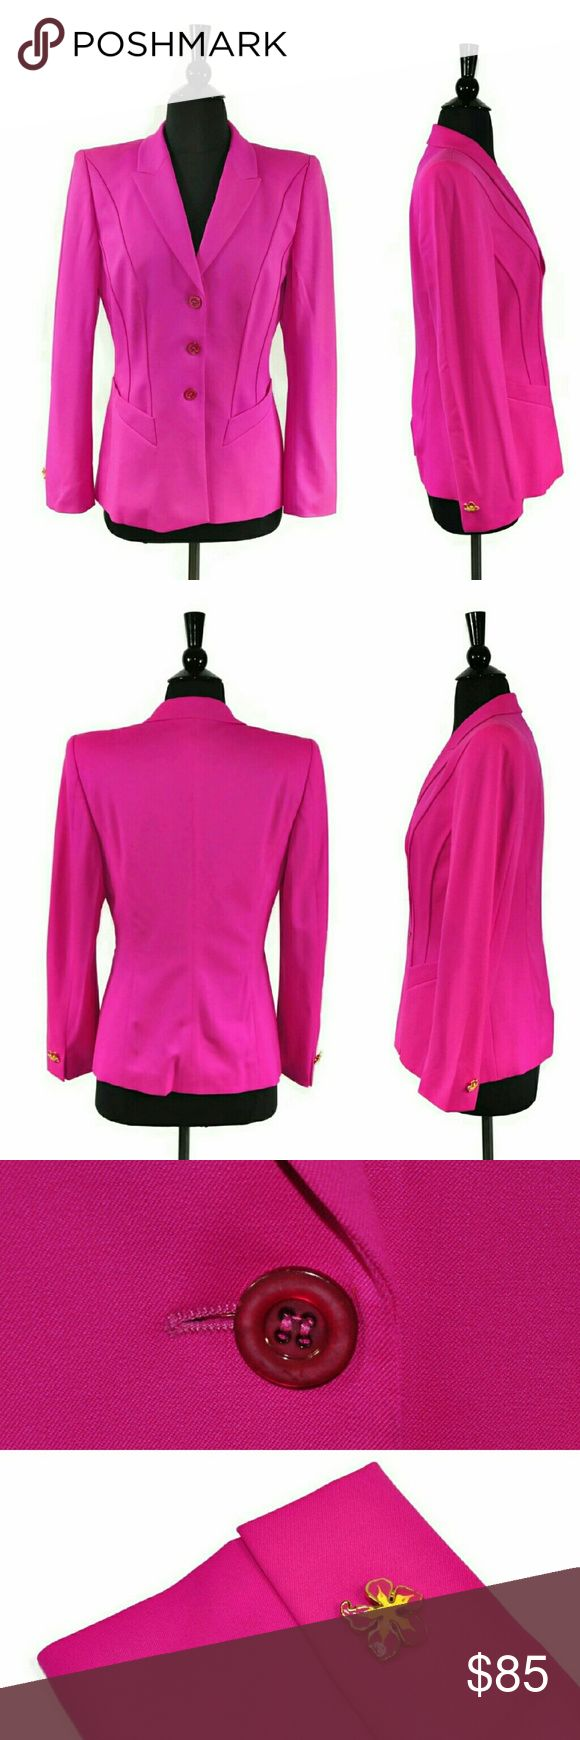 "Escada Hot Pink Button Blazer Jacket Details   Brand - Escada Margaretha Ley Size - German 34 - About a US Small /S - refer to measurements for best fit  Material - 96% Wool / 4% Spandex Color - Hot Pink Closure  - Three Button Front Condition - Excellent, pre-owned. No rips, stains, odors, or notable flaws present on the garment.   Details - Floral Enamel Cuff Button Accents  Measurements Bust -34"" Waist - 32"" Sleeve - 23"" Length - 25"" Escada Jackets & Coats Blazers"